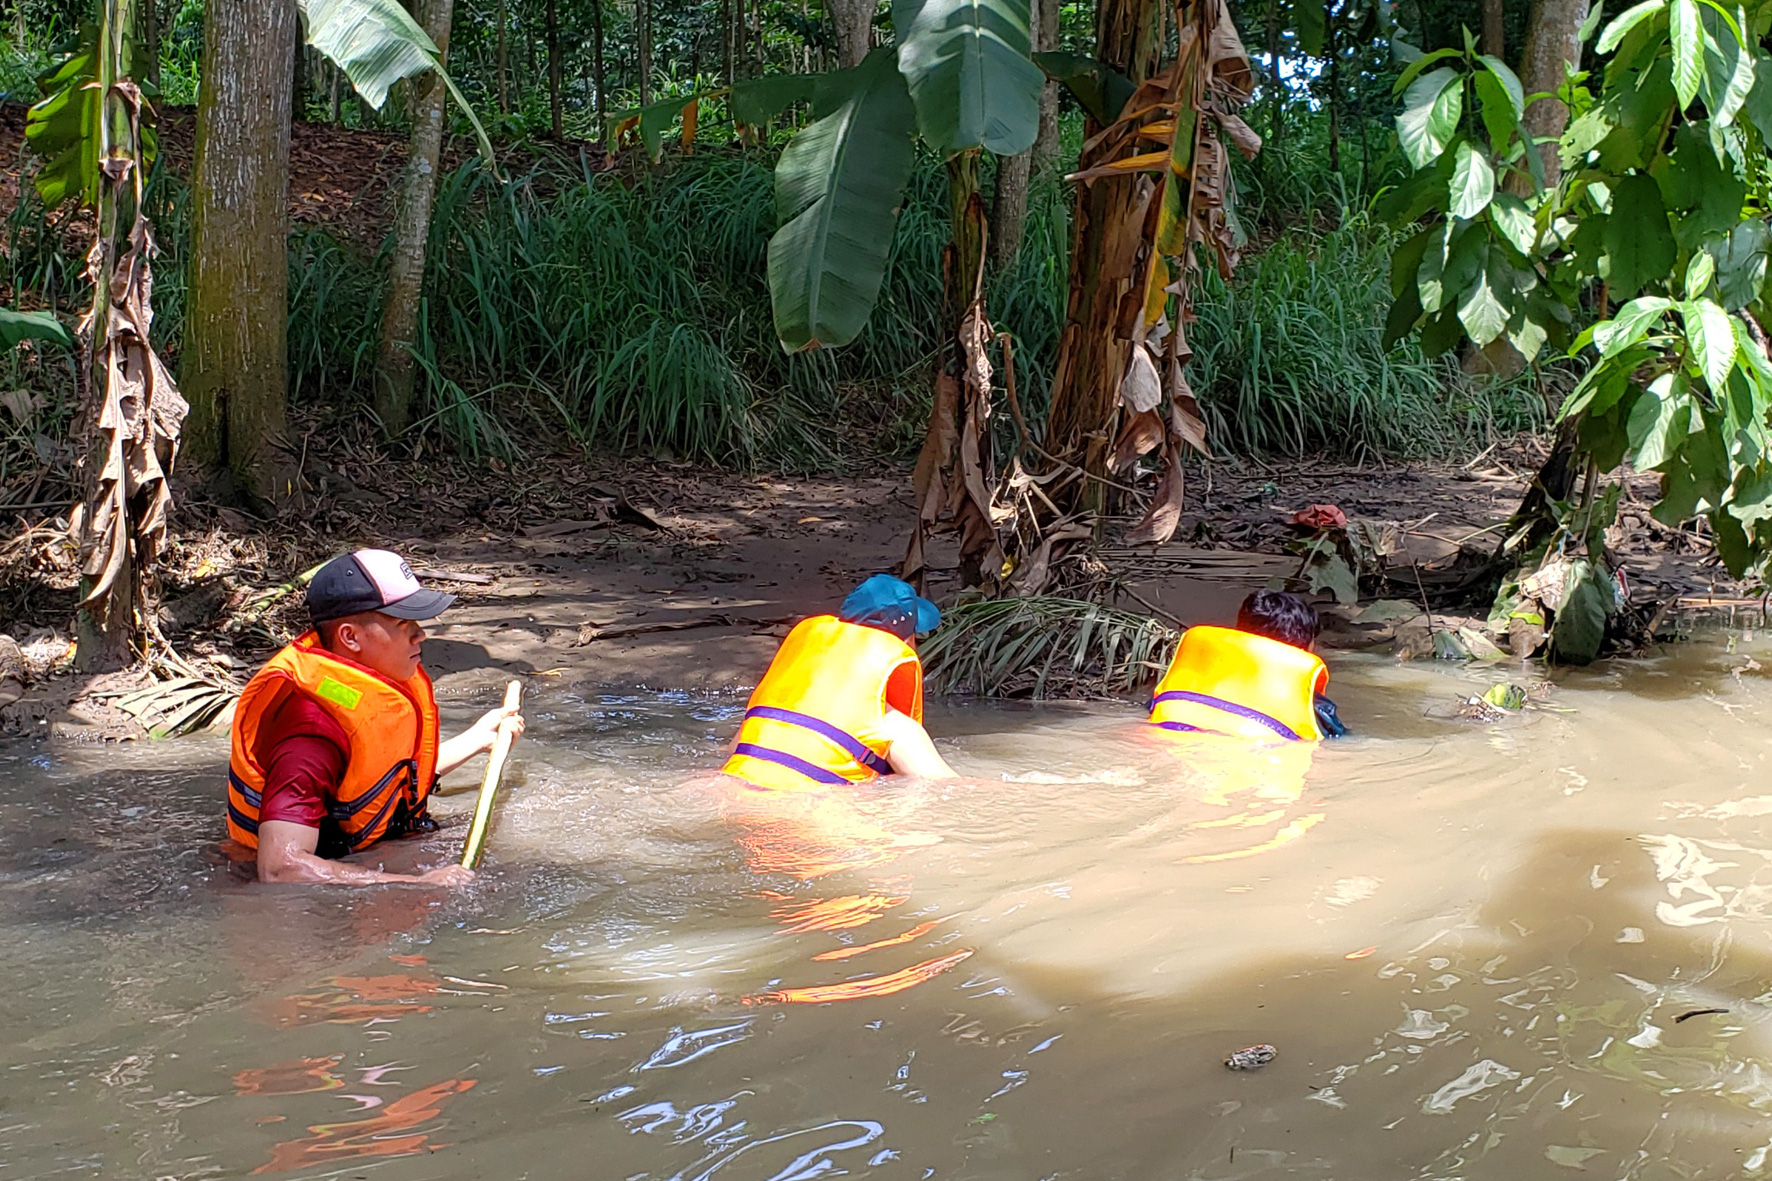 Rescuers search for Tran Thi Mung in Dong Nai Province, Vietnam, September 22, 2020. Photo: A Loc / Tuoi Tre